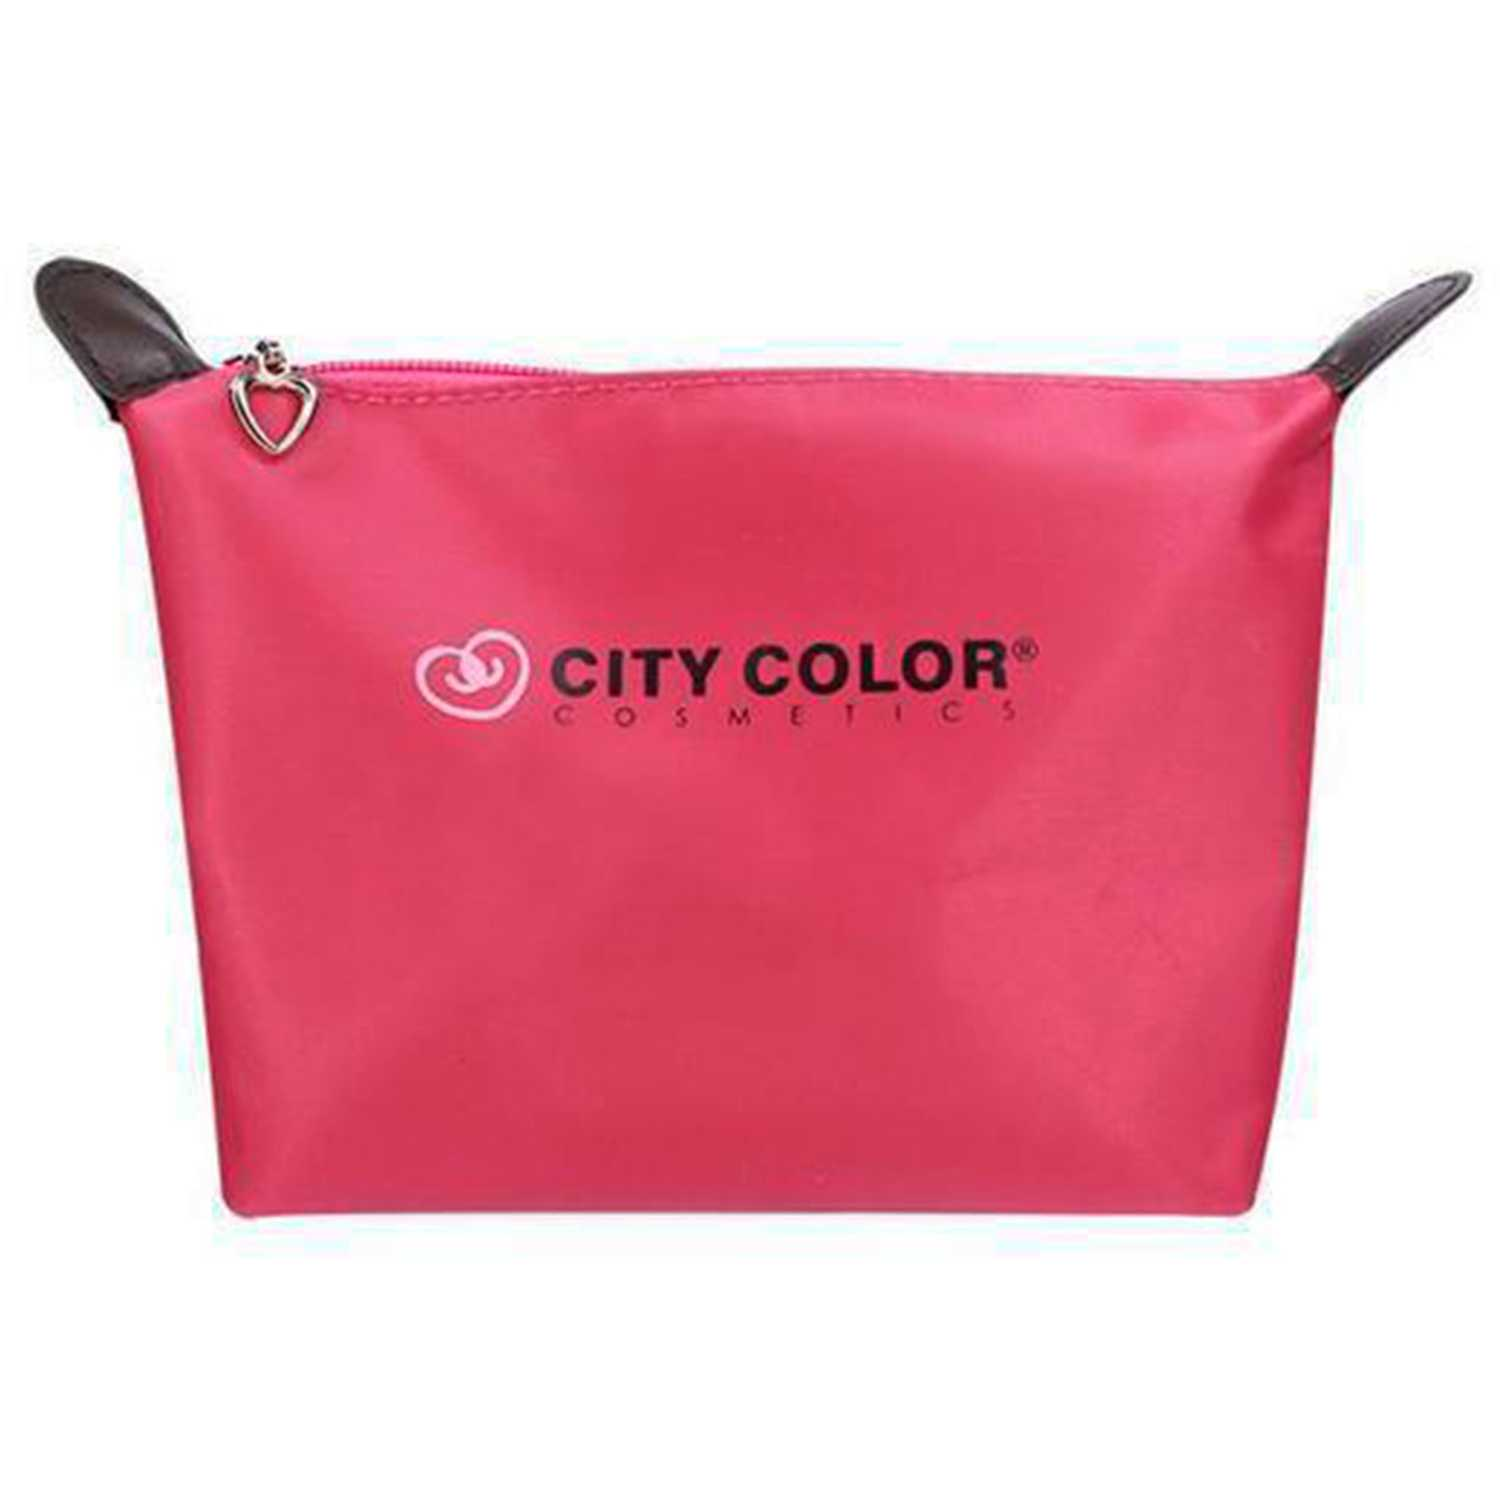 City Color COSMETIC BAG Pink Bolsa de cosméticos